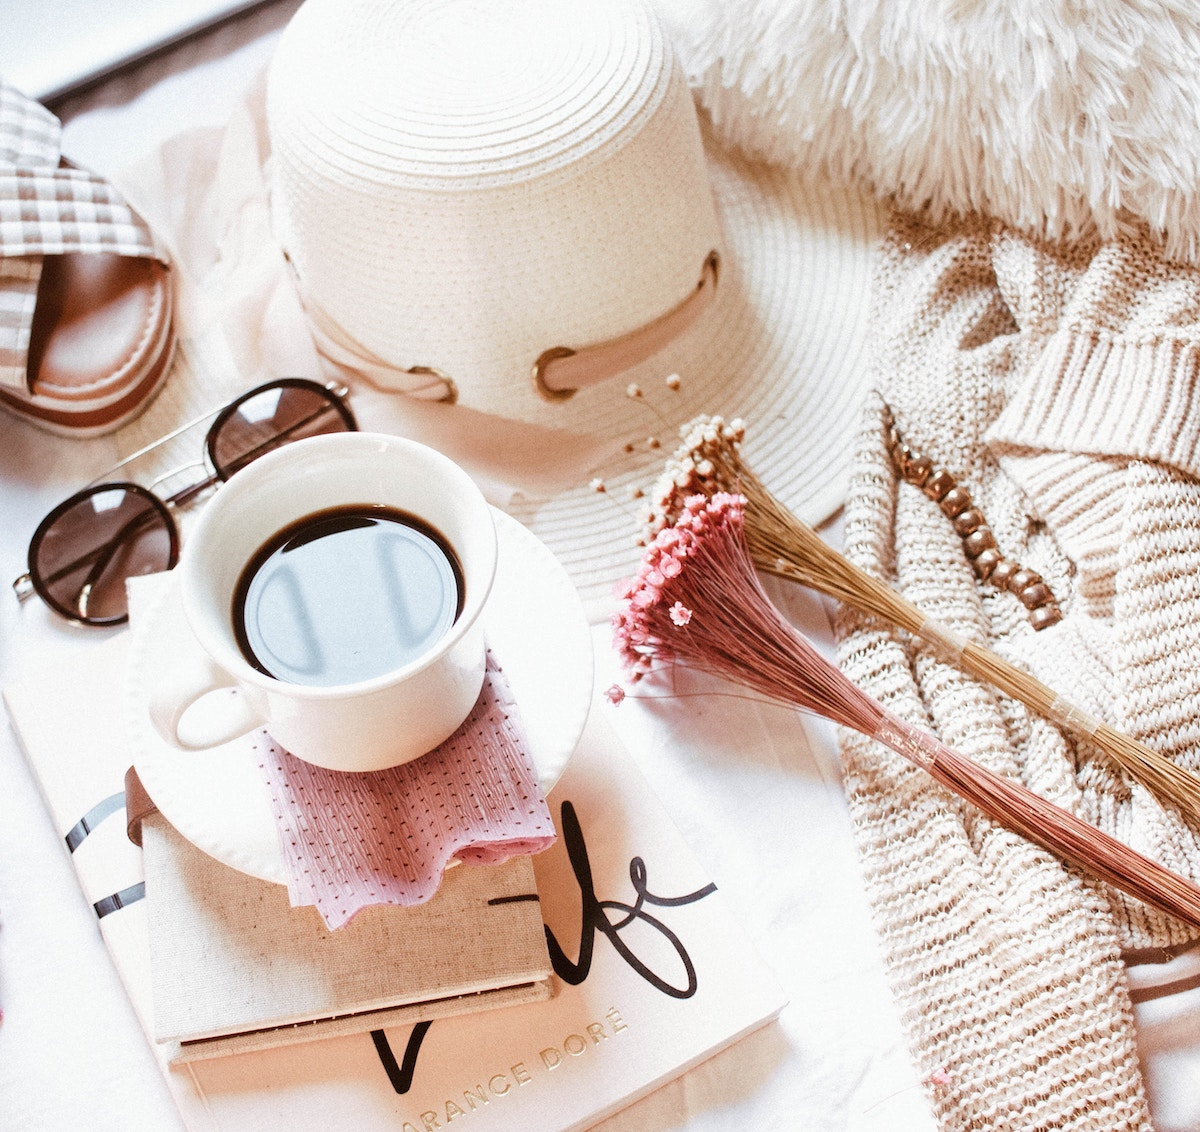 The 5 Self-Care Products Under $50 That Will Completely Transform Your Day To Day Routine, And Make You Happier – Vol 2